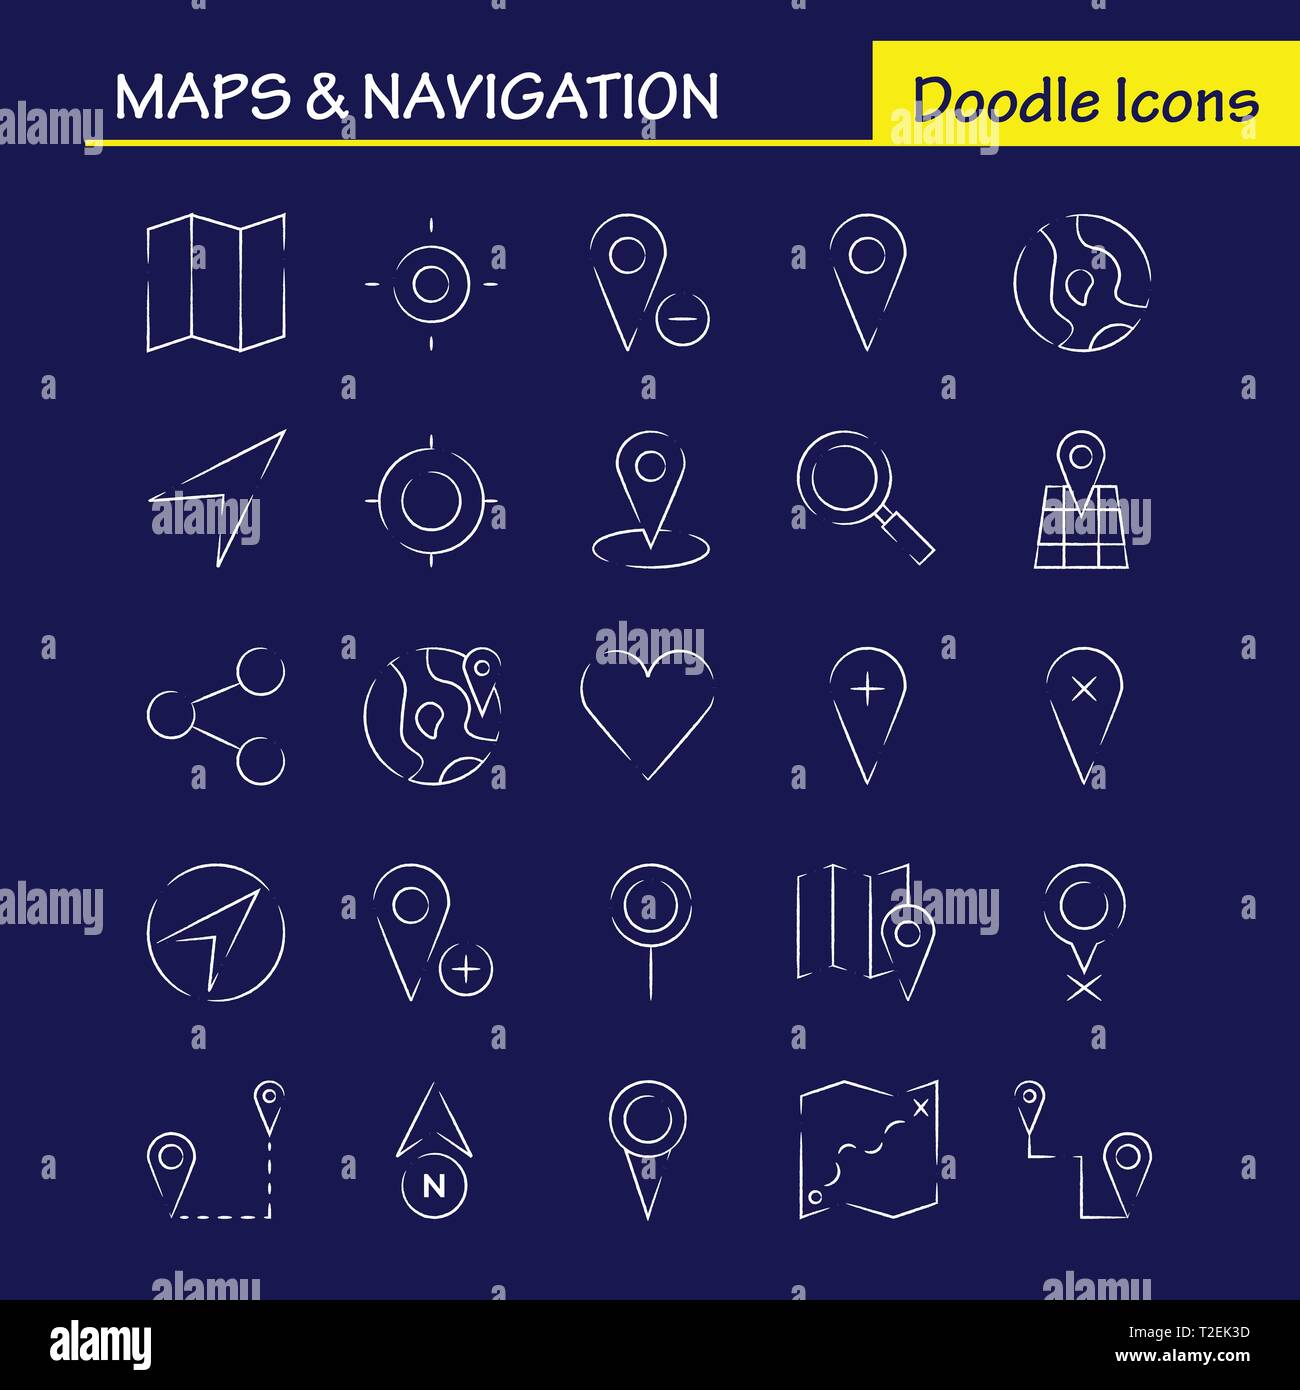 Maps And Navigation Hand Drawn Icon Pack For Designers And ... Map Designers on